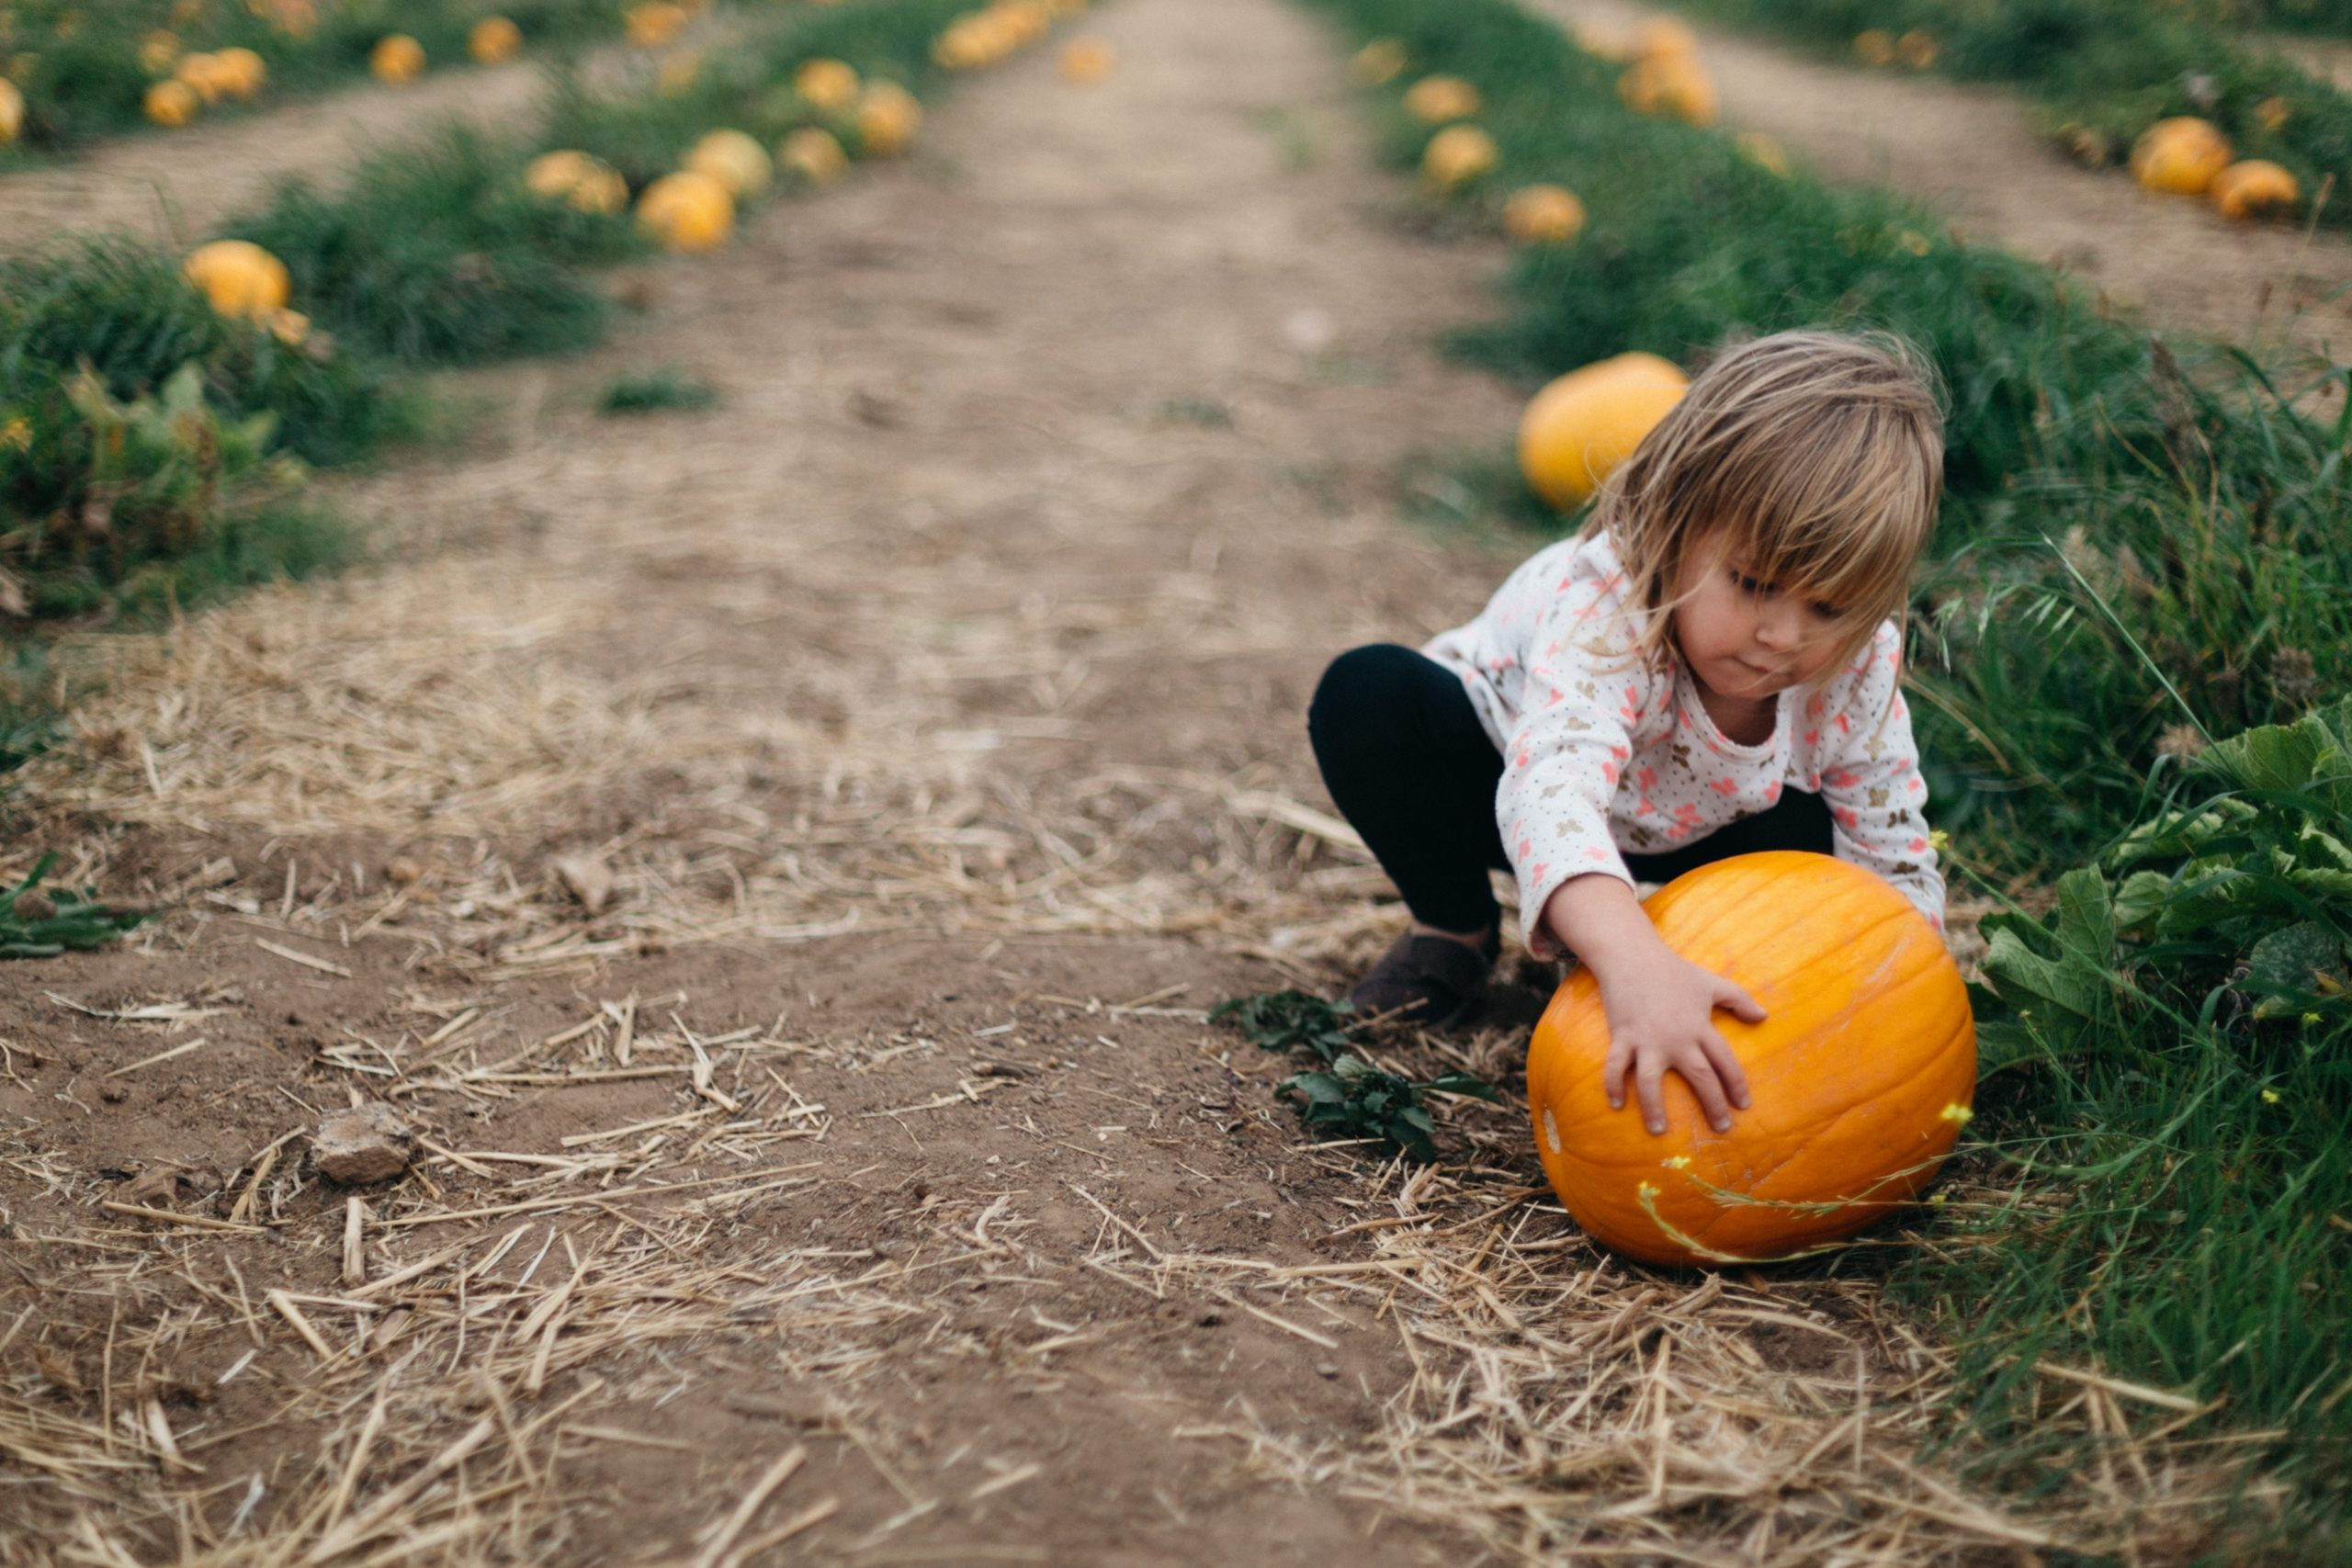 girl holding pumpkin beside green bushes during daytime